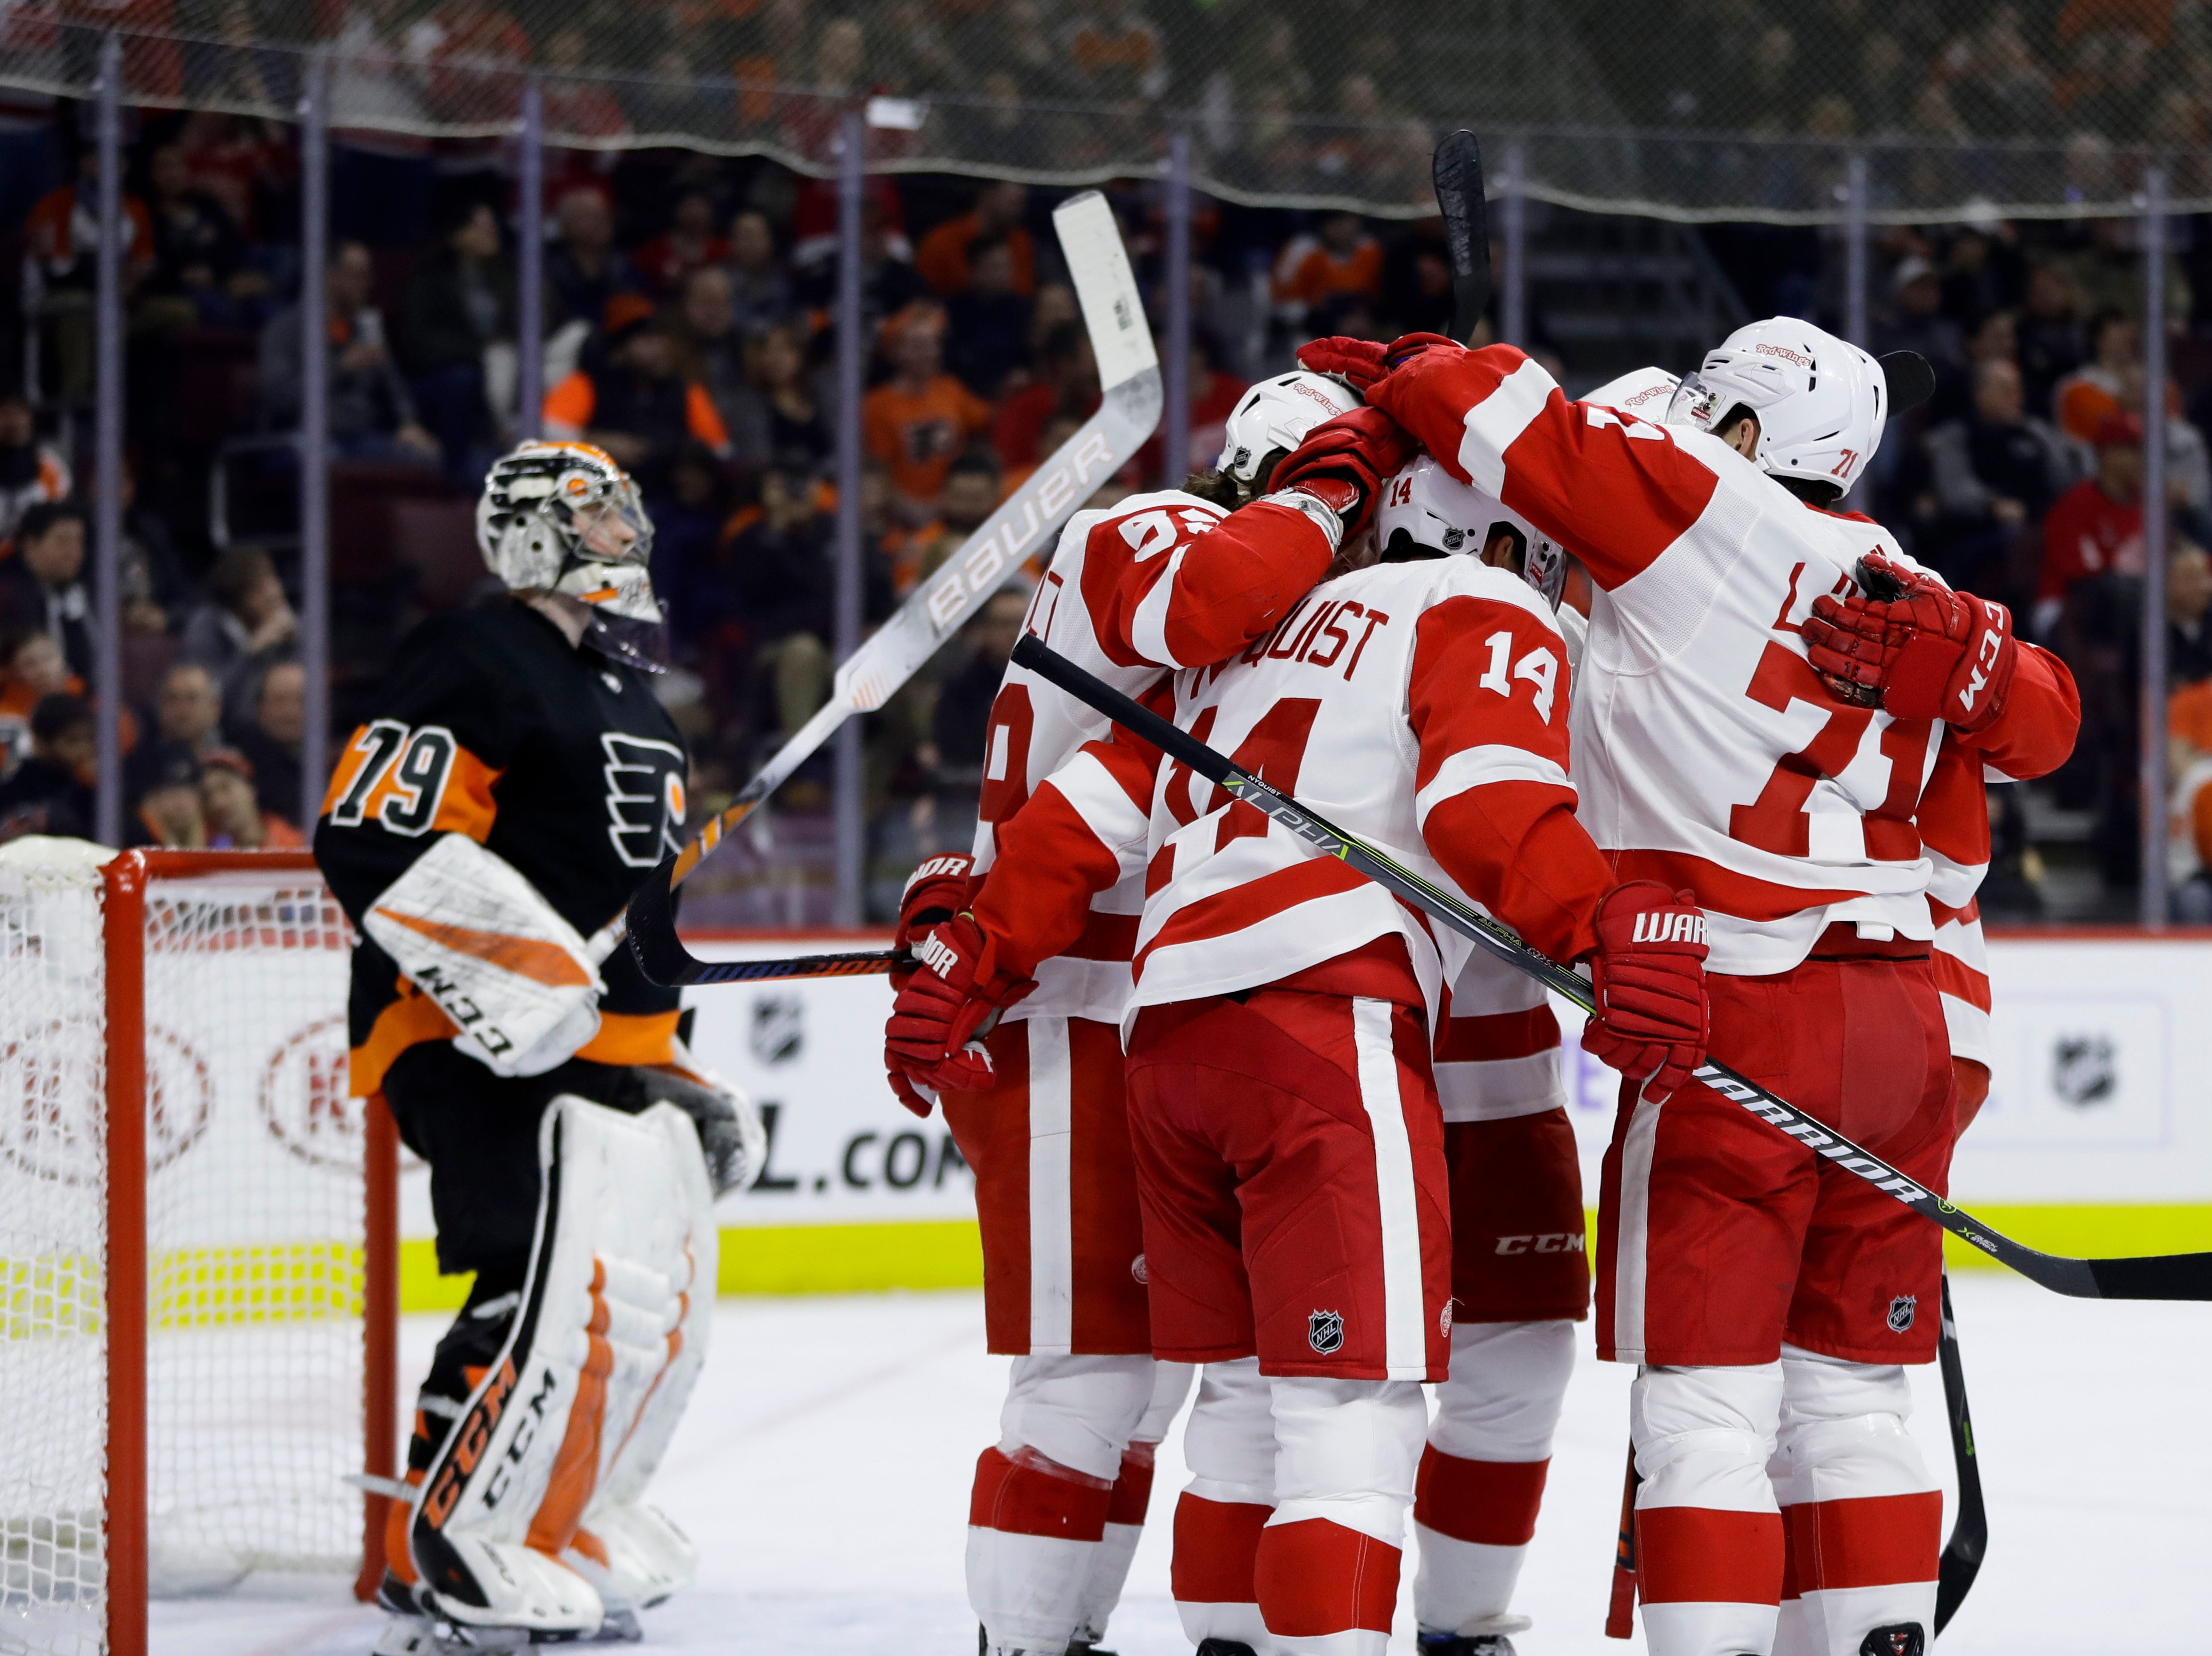 Detroit Red Wings' Gustav Nyquist (14) celebrates with his teammates after scoring a goal against Philadelphia Flyers' Carter Hart (79) during the first period of an NHL hockey game, Saturday, Feb. 16, 2019, in Philadelphia. (AP Photo/Matt Slocum)